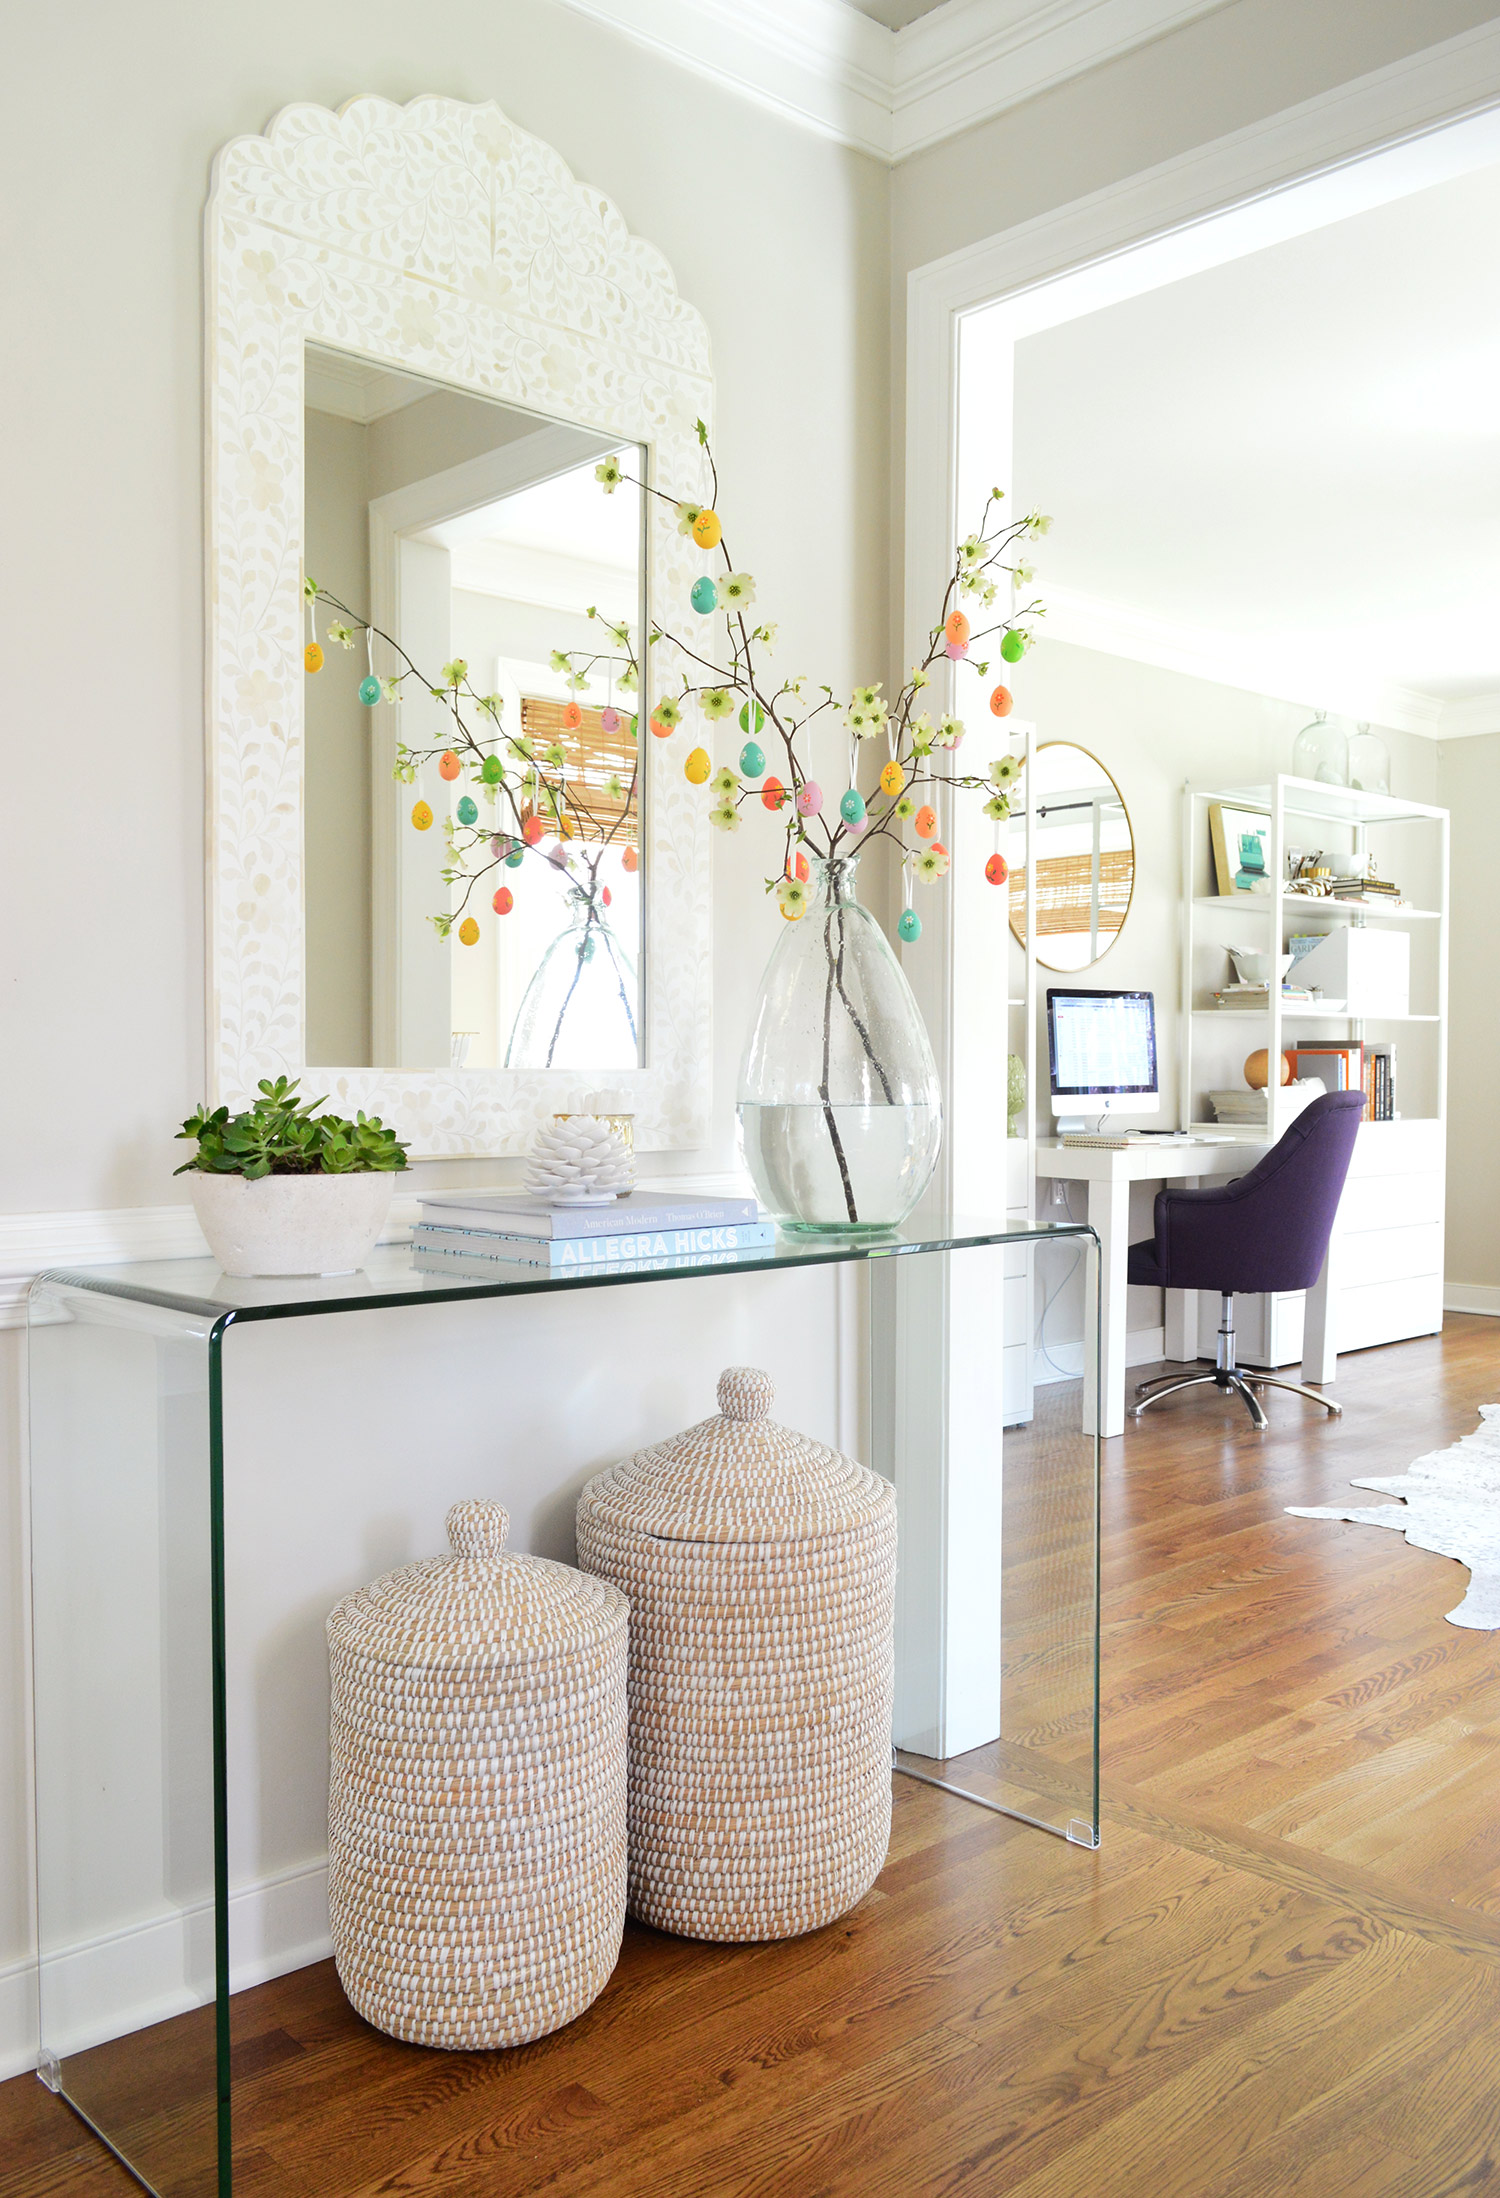 Easter-Egg-tree-in-foyer-with-acrylic-console-table-and-inlay-mirror-with-decorative-baskets-underne-wallpaper-wp4004475